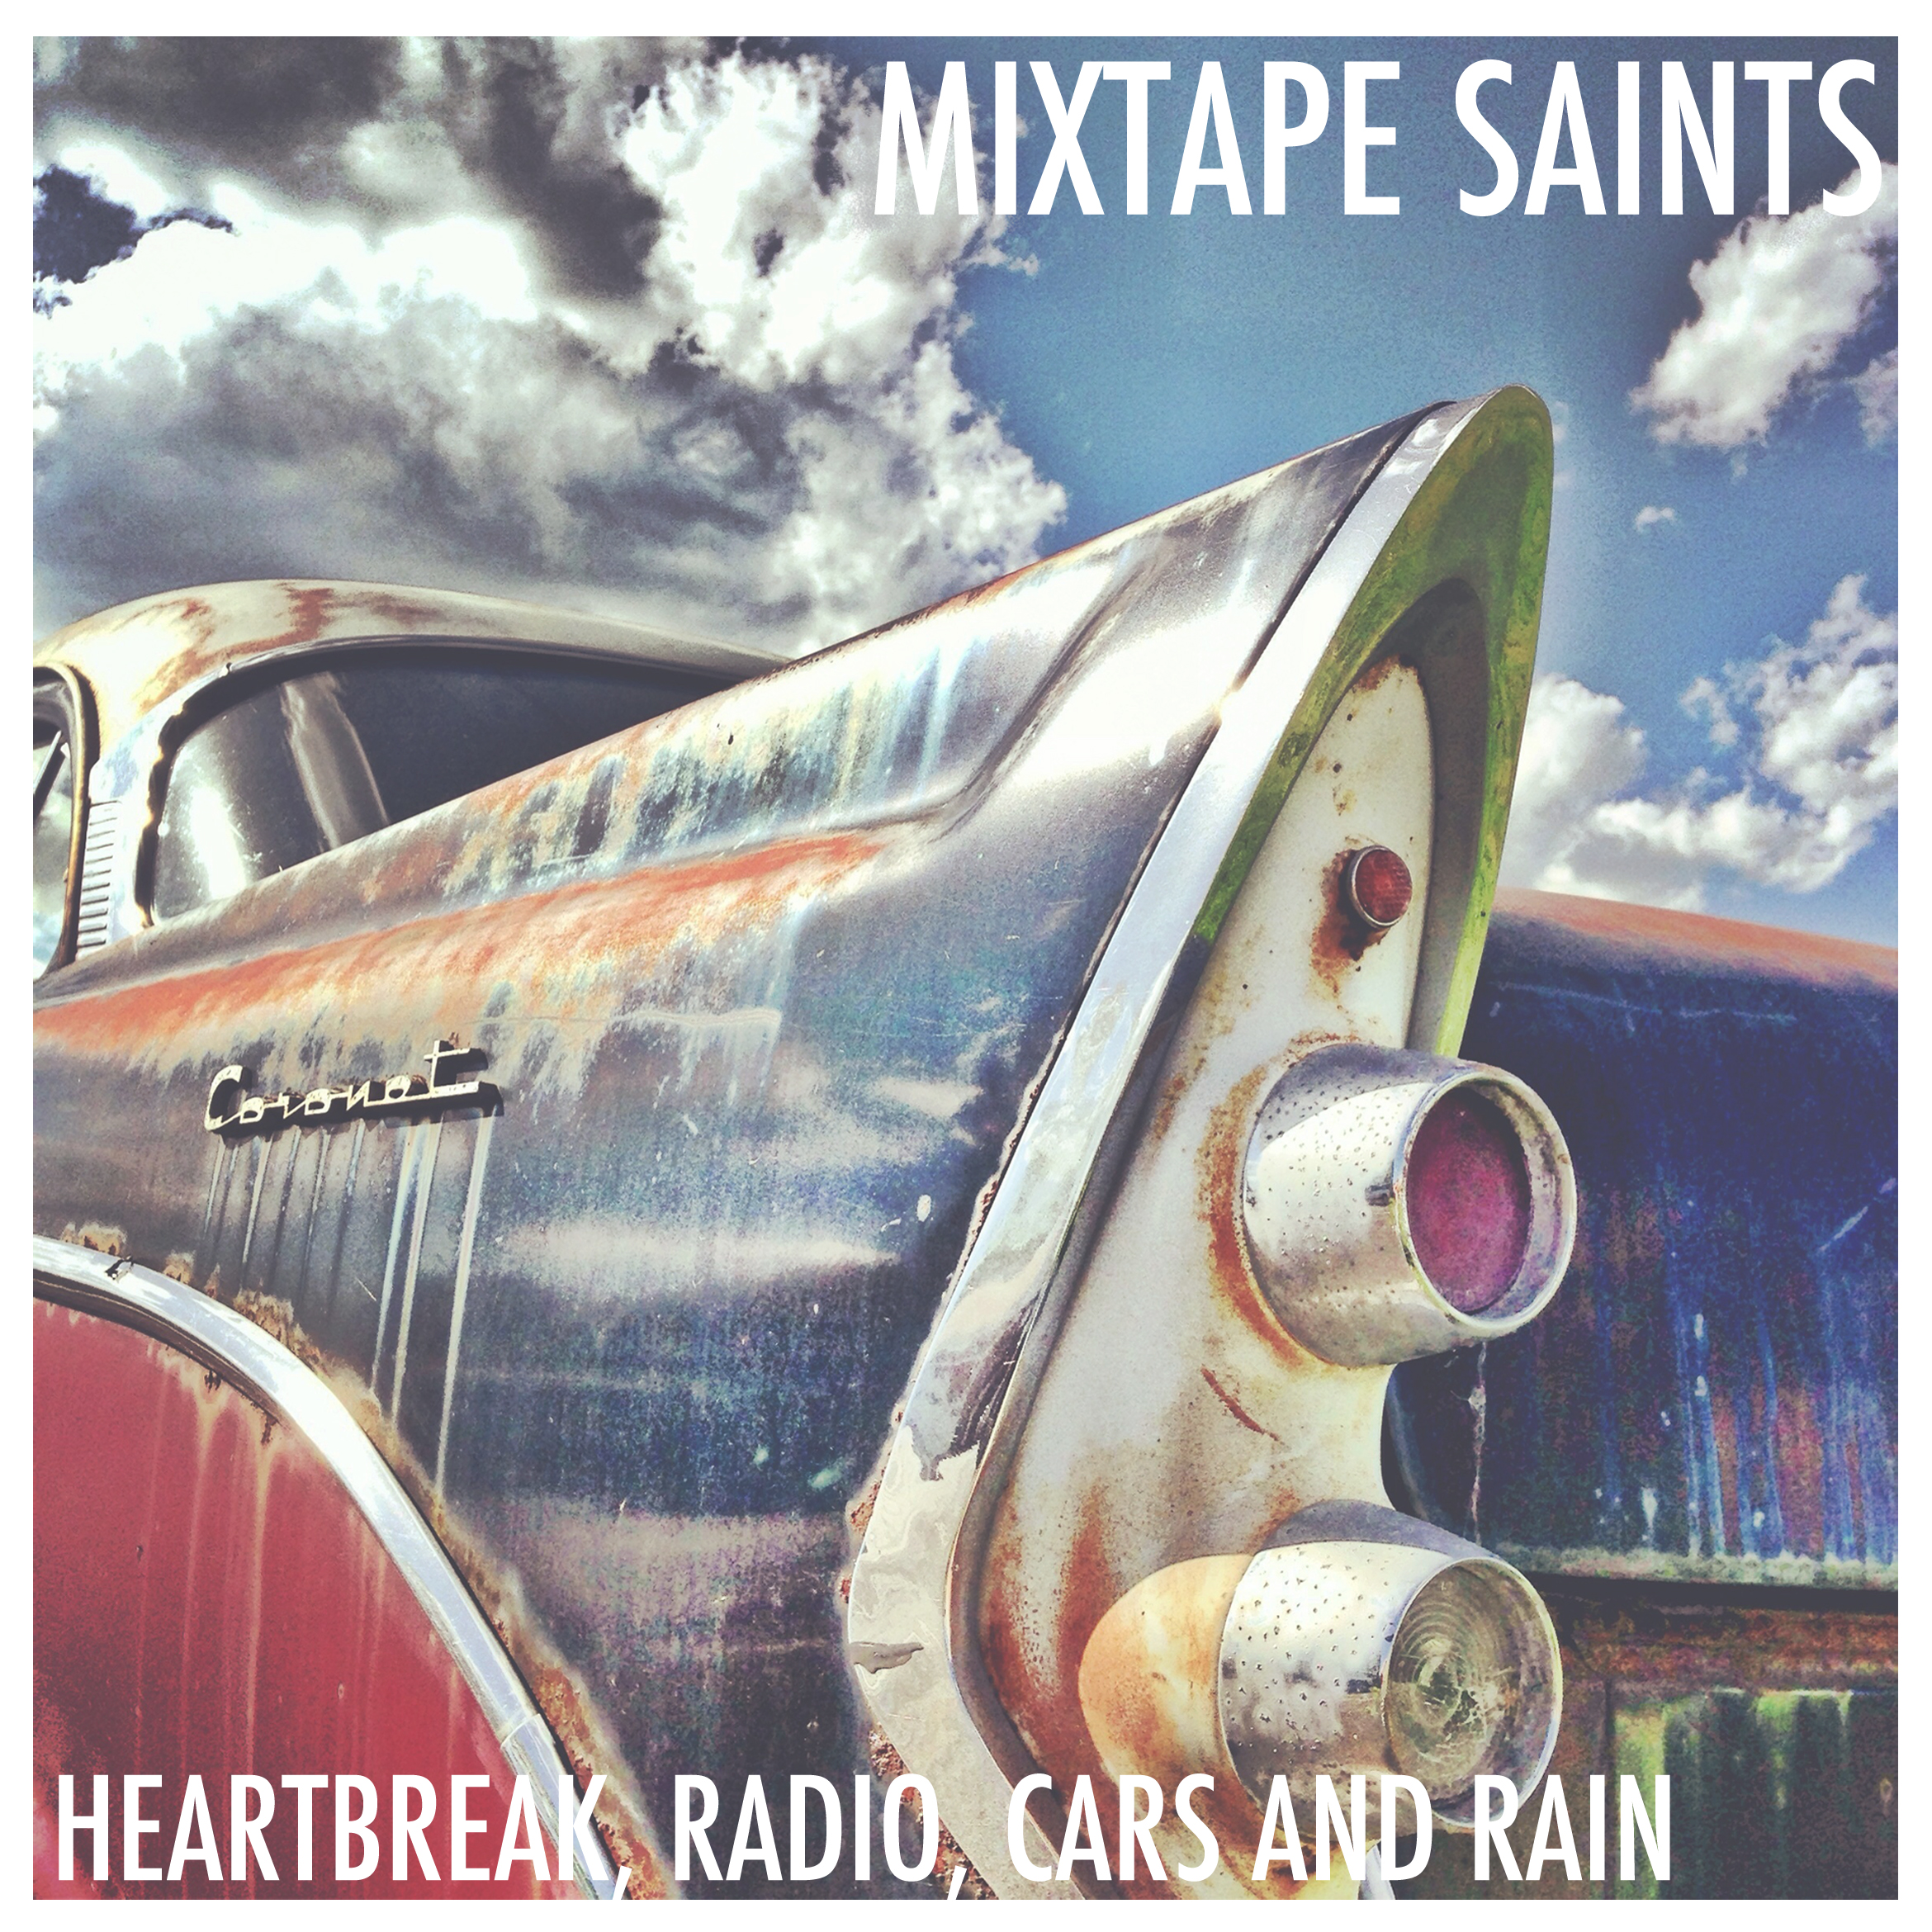 Heartbreak, Radio, Cars and Rain